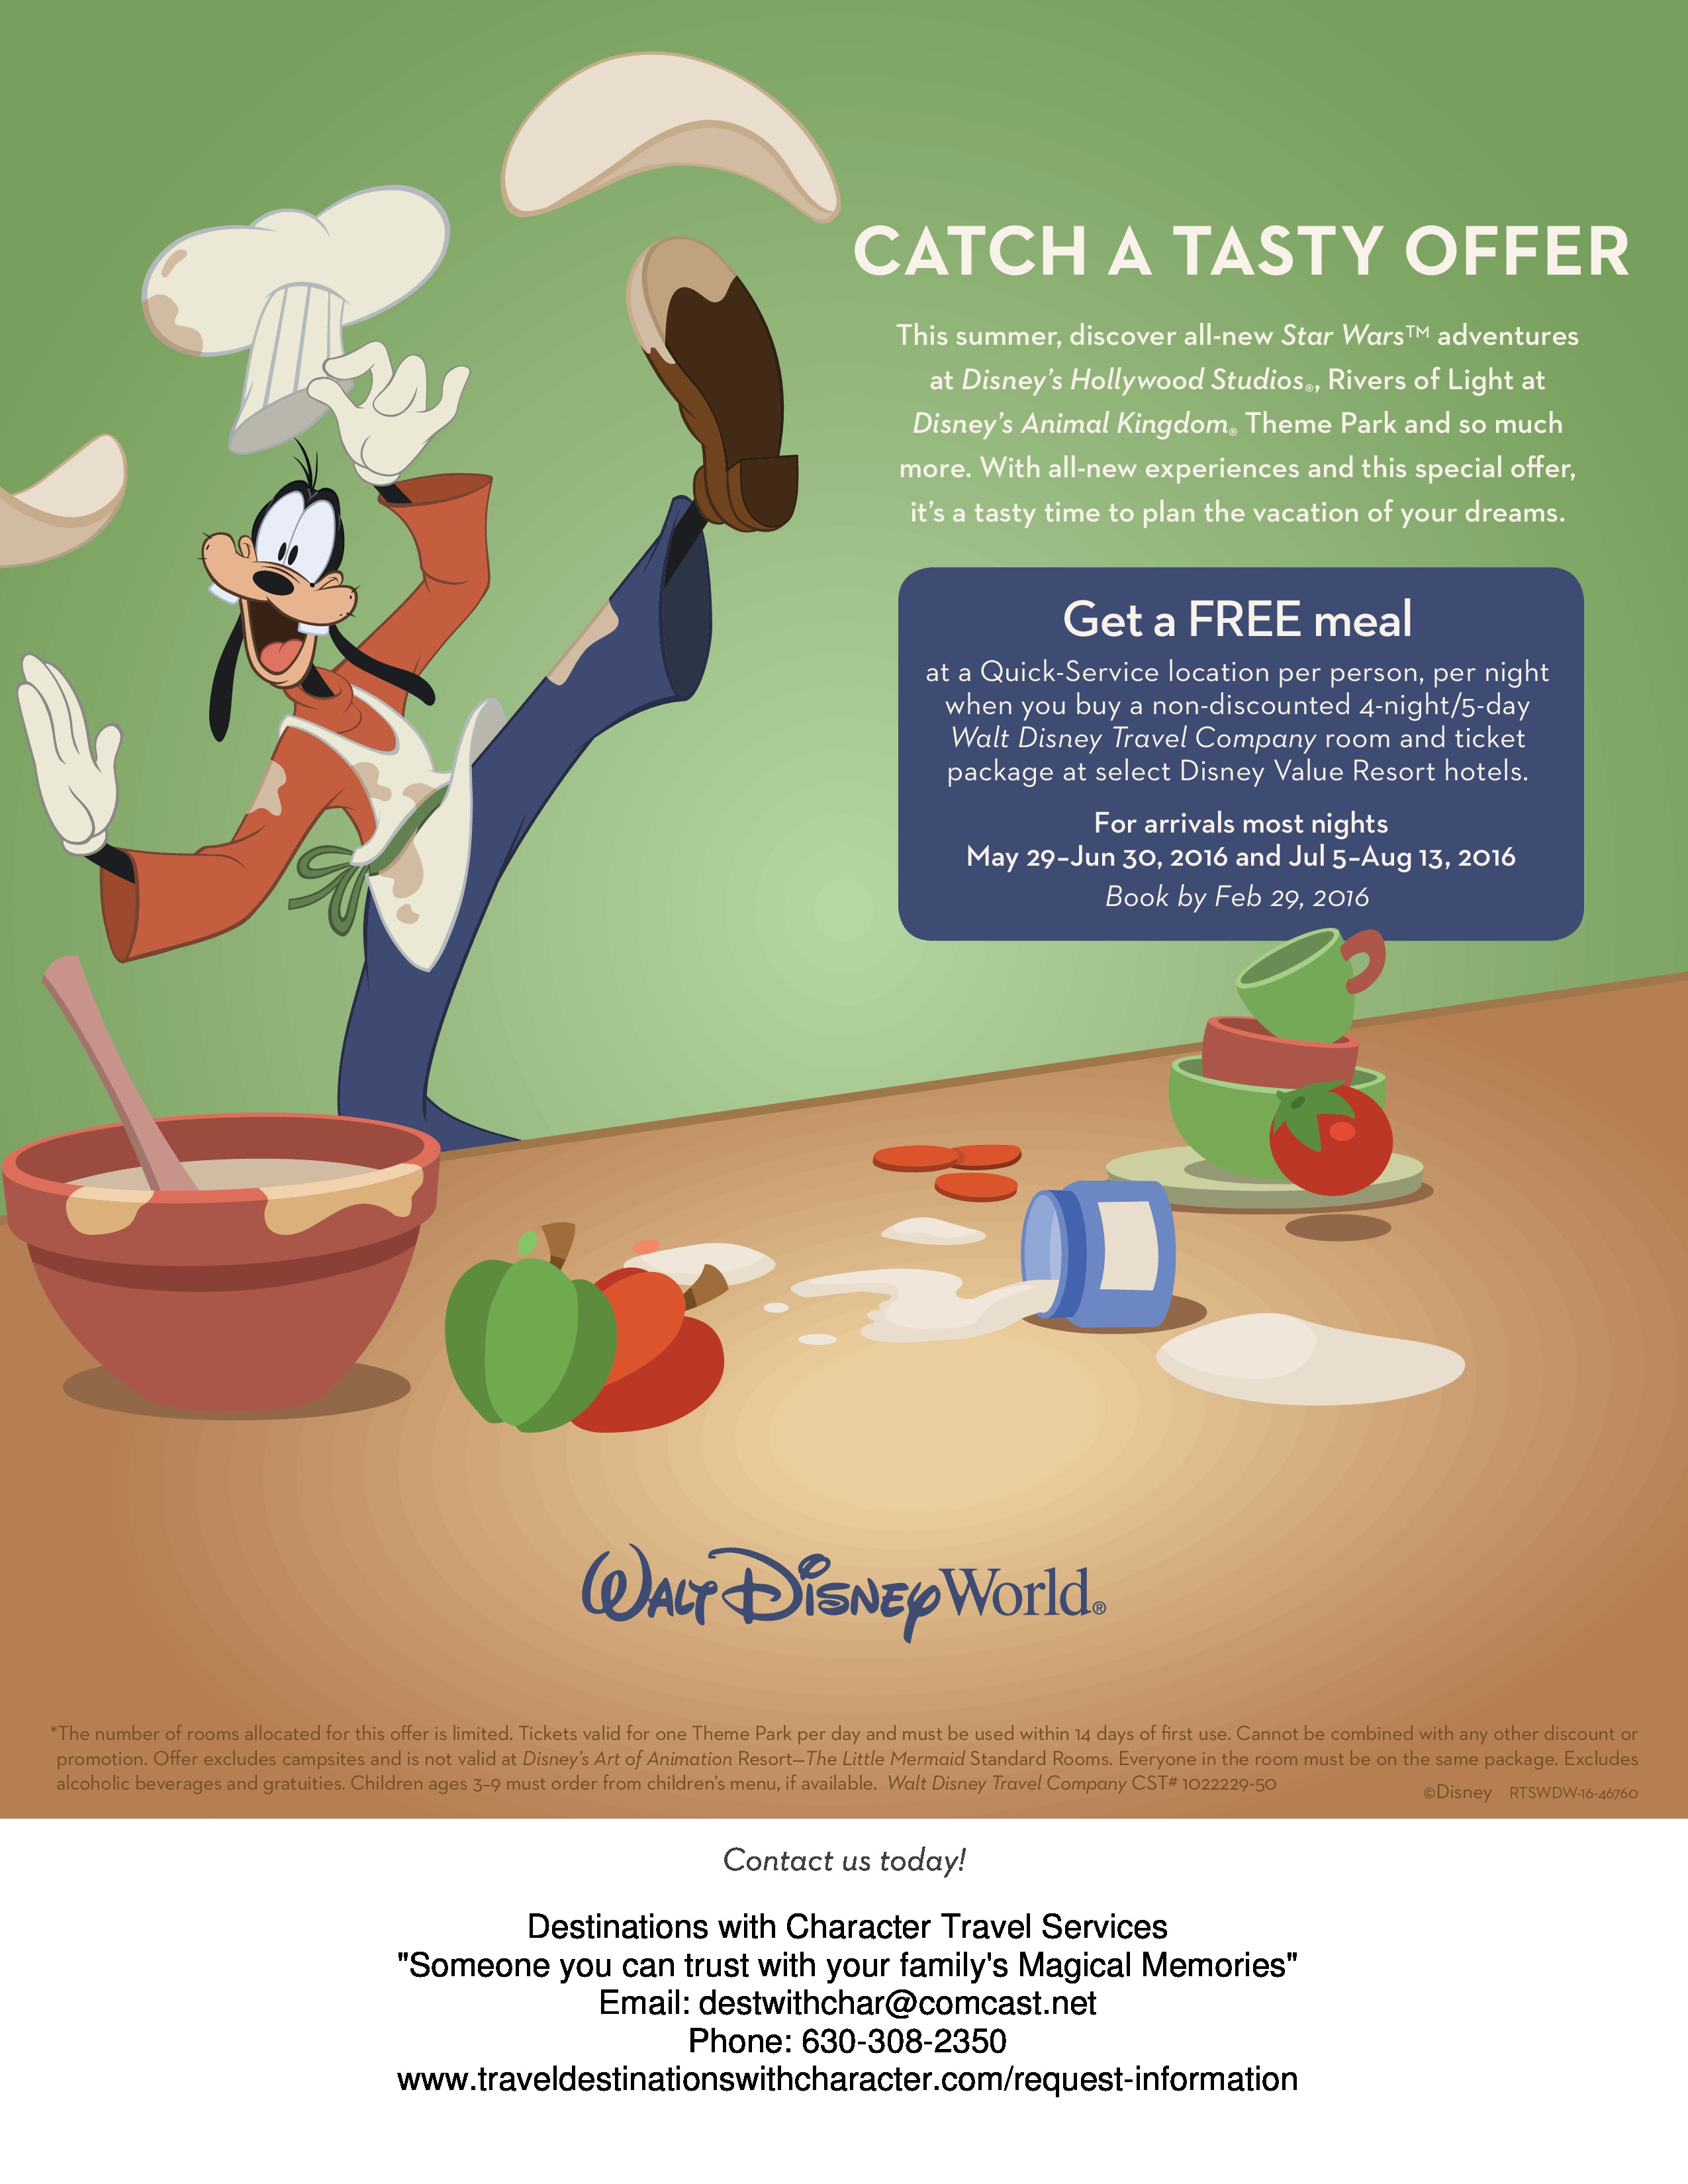 4 Things You Should Know About Walt Disney World's New Free Dining Deal